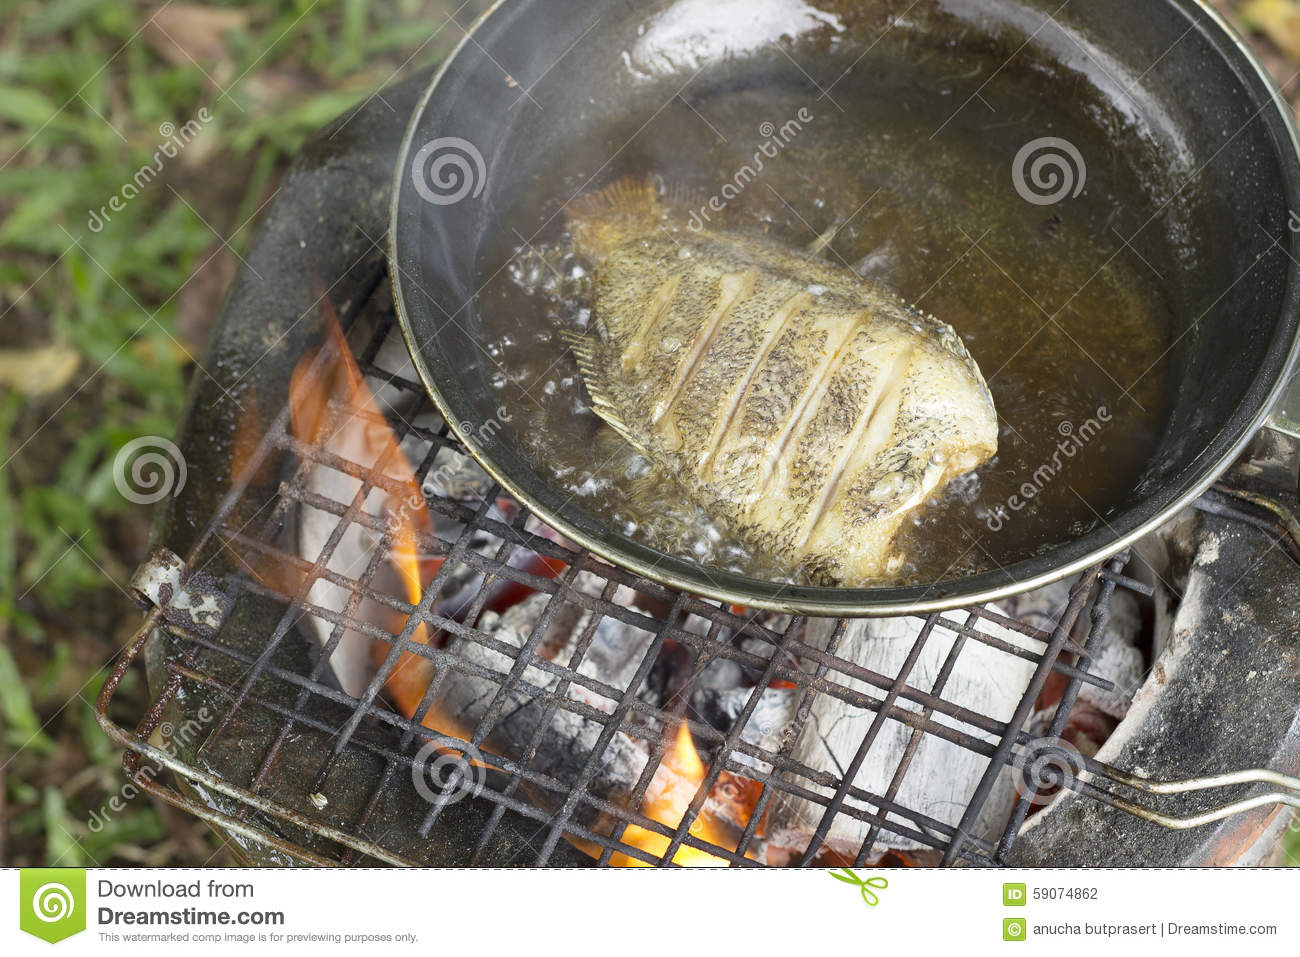 Cooking fry the fish on camping in the forest stock photo for What is the best oil for frying fish